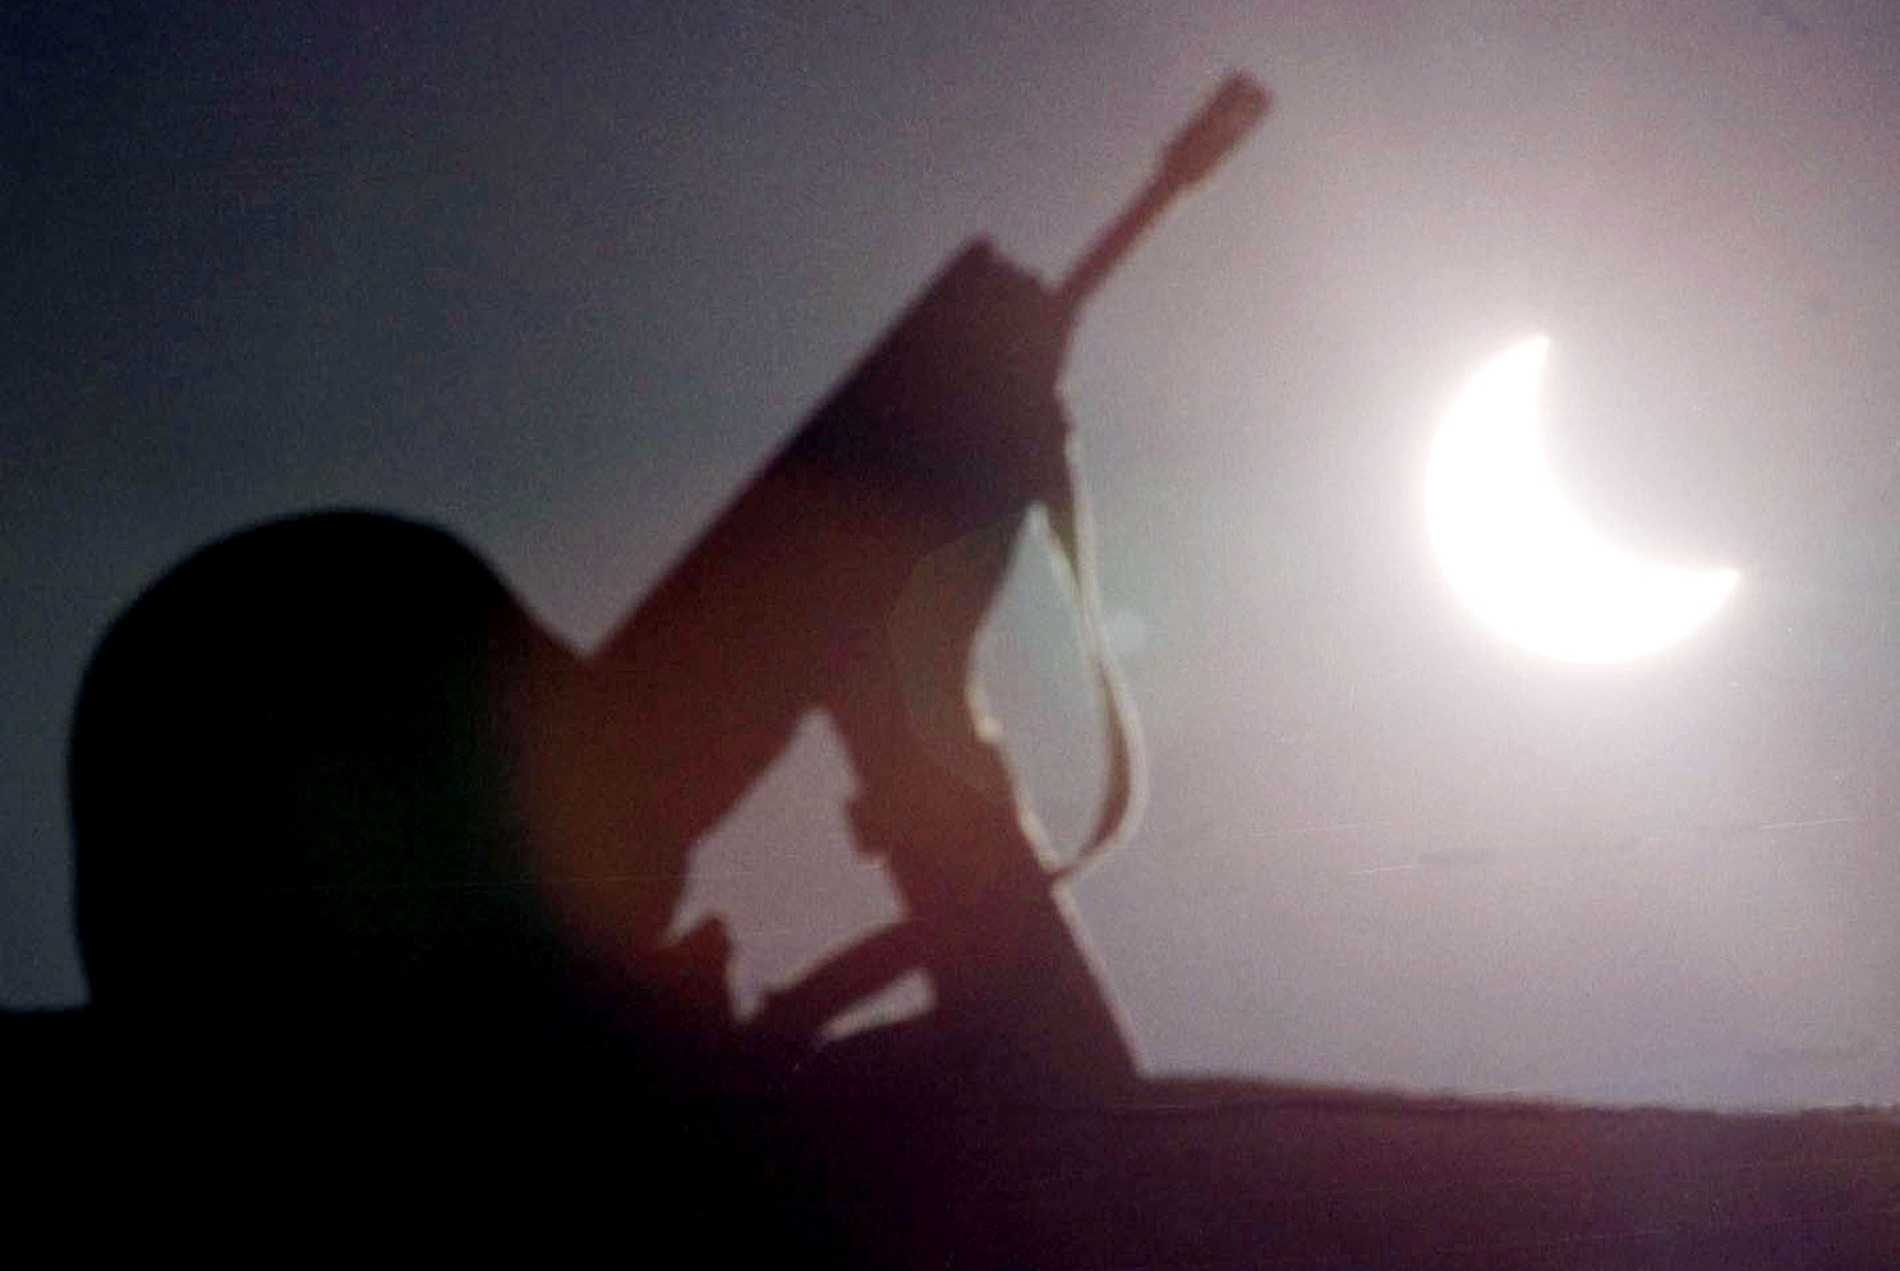 A French soldier, part of NATO's peacekeeping forces in Kosovo, stands guard beneath the solar eclipse on the ethnic Albanian side of the bridge dividing Kosovska Mitrovica, about 20 miles north of Pristina, Yugoslavia on August 11, 1999.